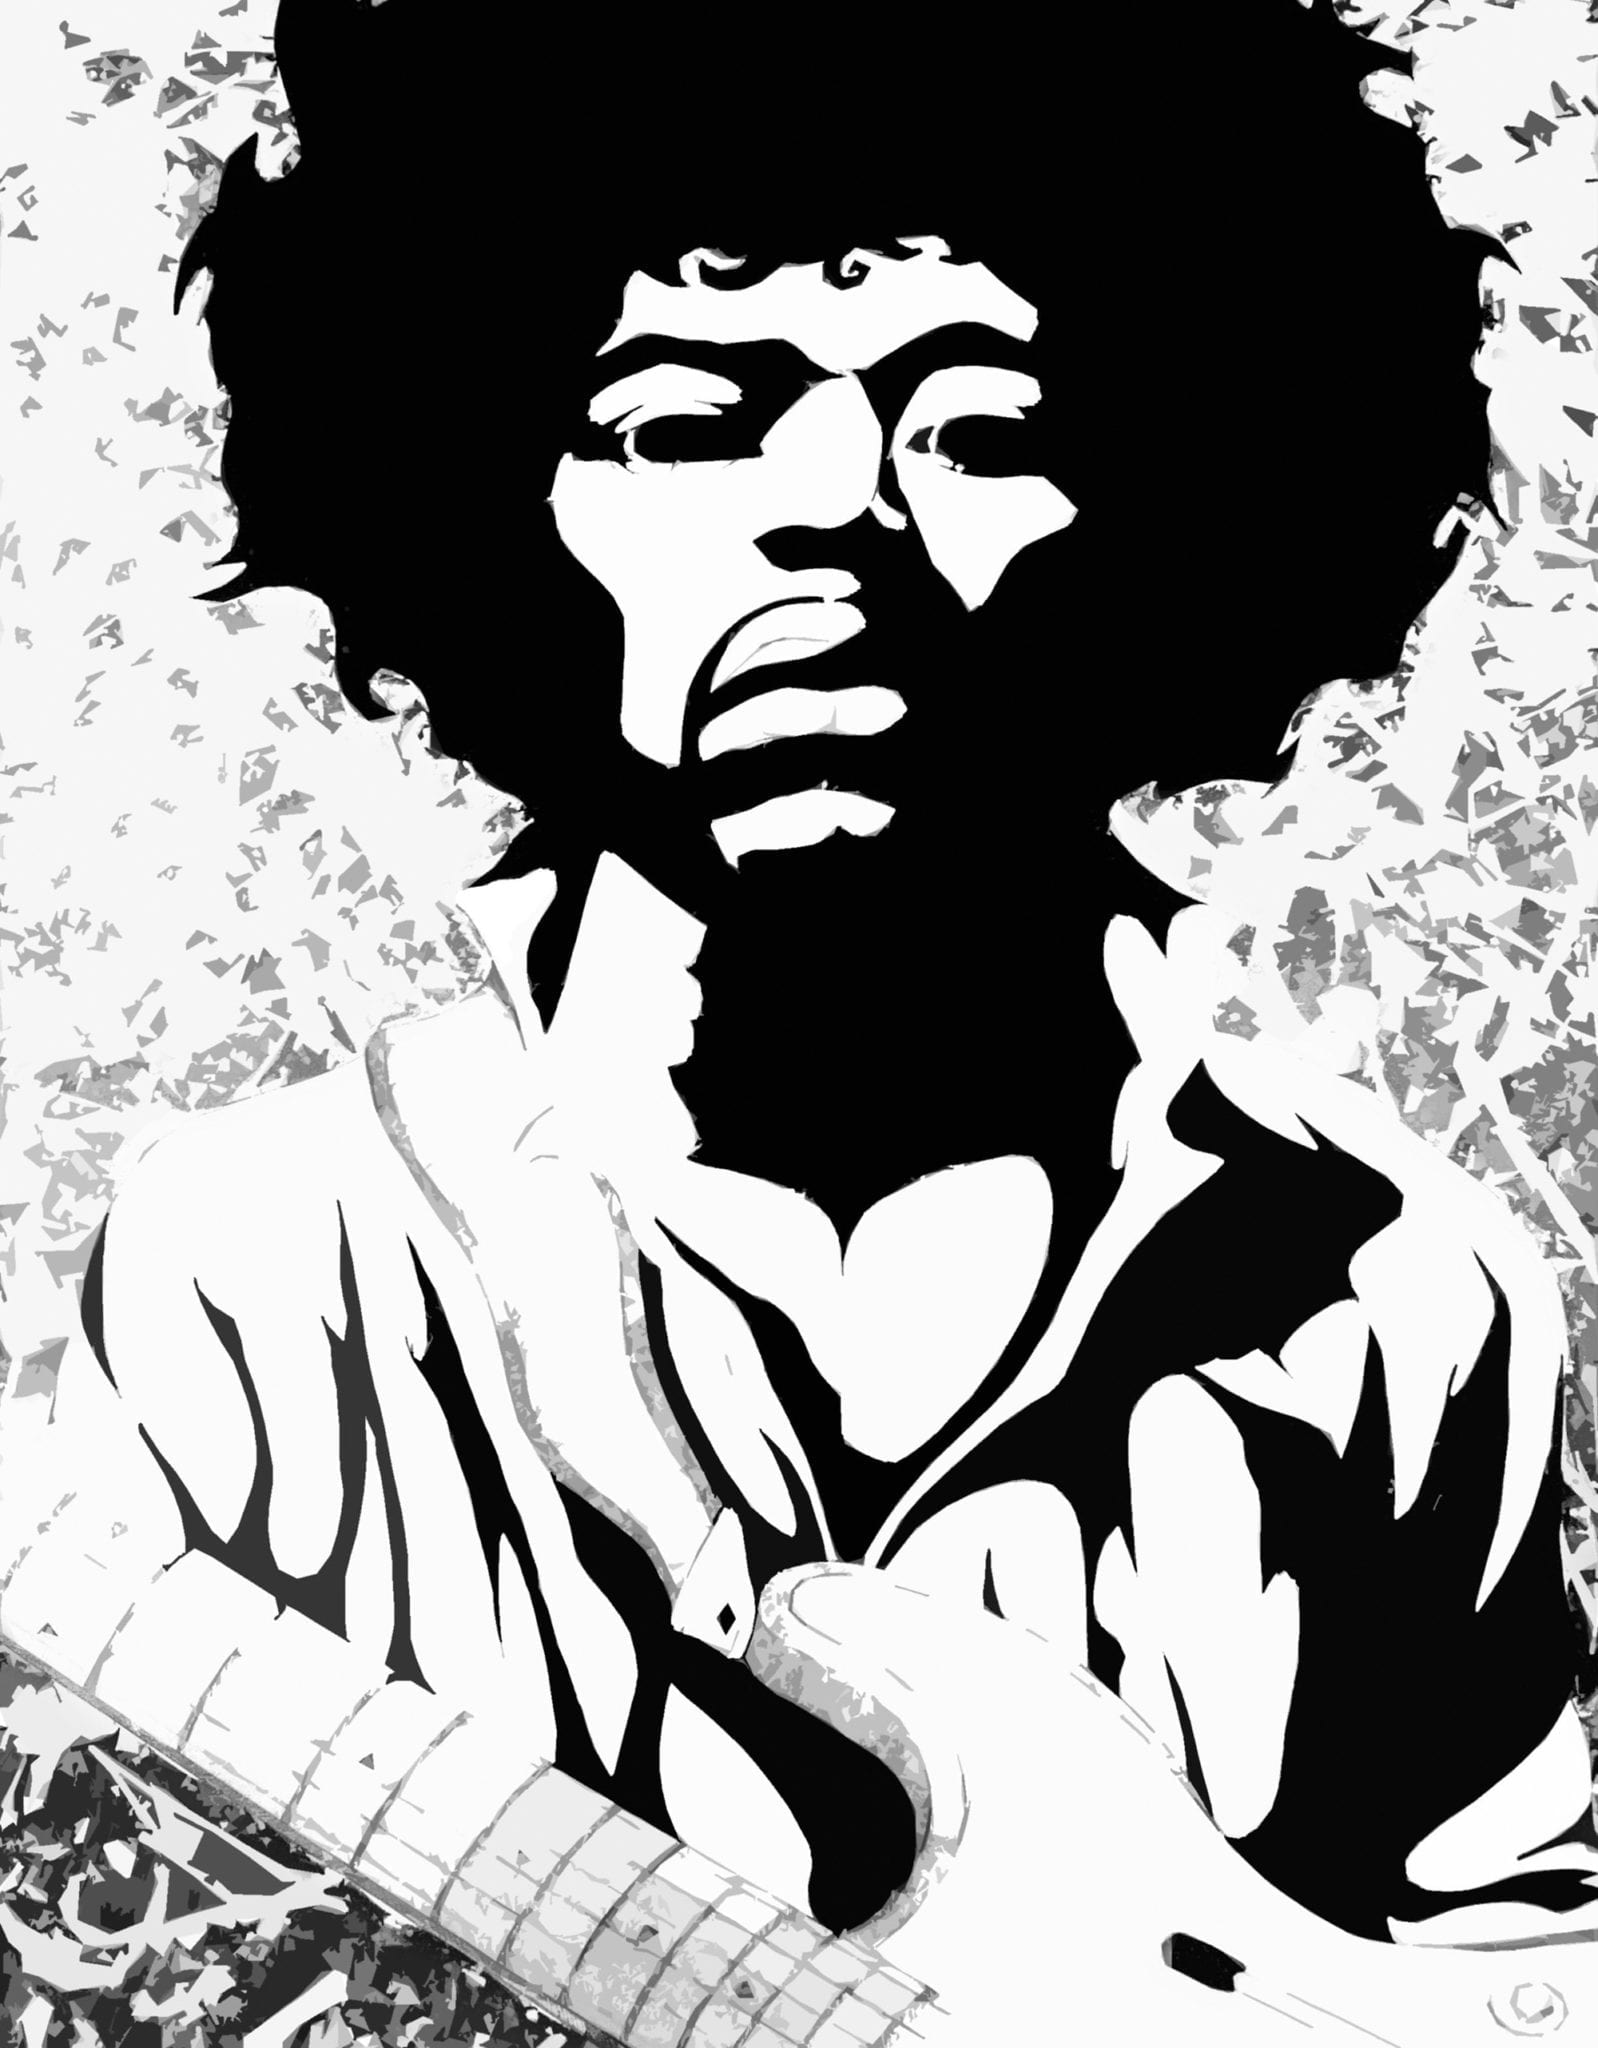 Jimi by Jared Espinoza